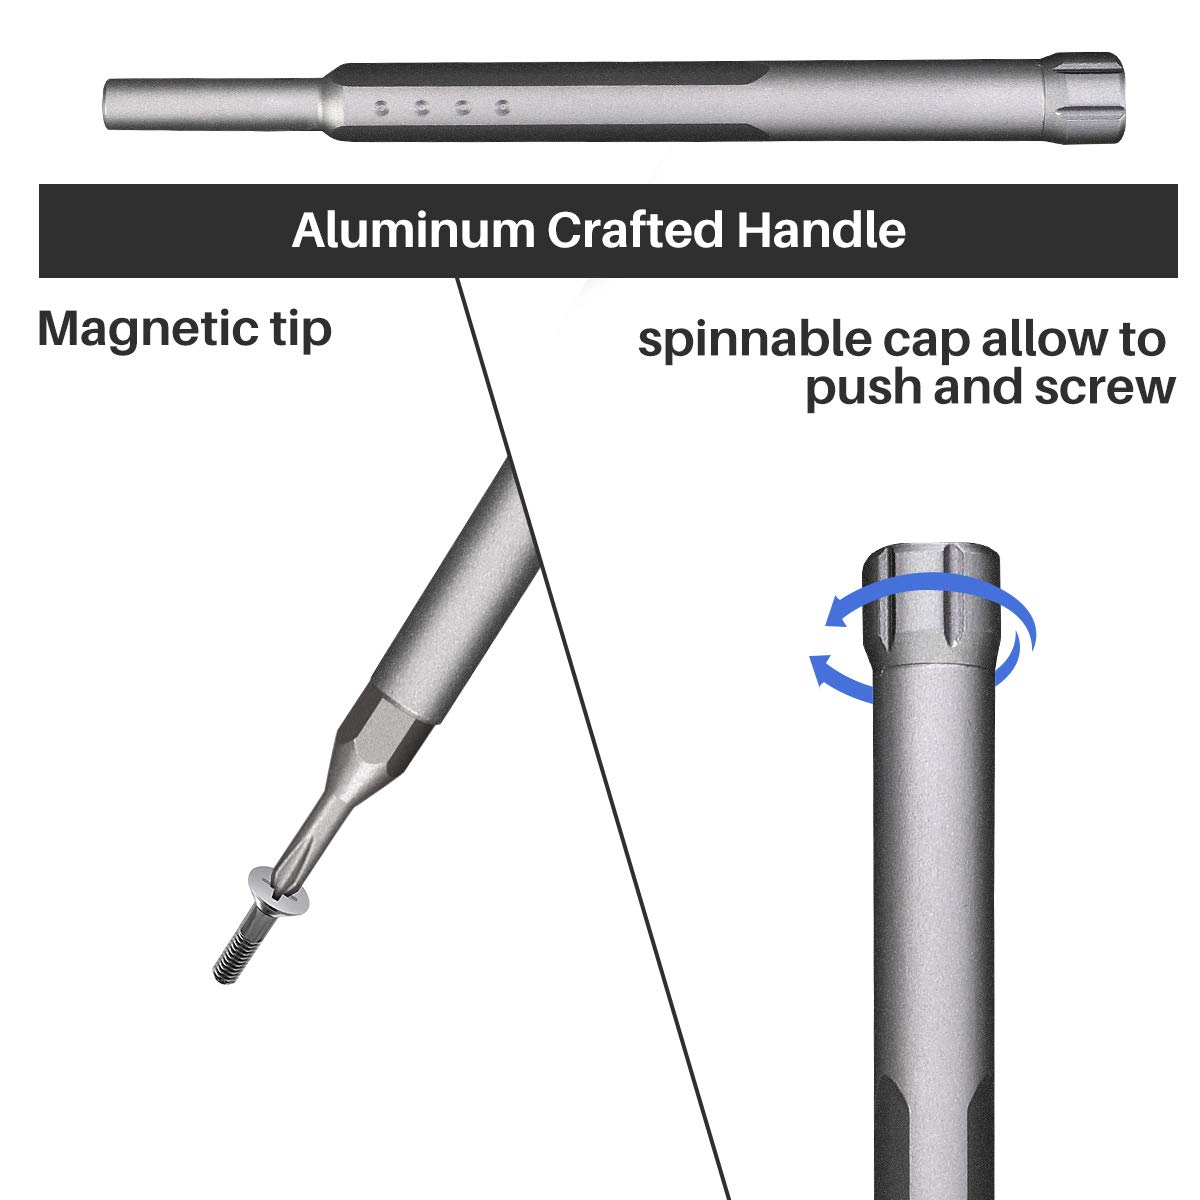 Electronics Repair Screw Driver Set with Alloy S2 Strong Steel, Magnetic Craftsman Screwdrivers Smartphone Repair Tool Kit 48 pcs for Fixing iPhone 8 Plus Game Console Tablet PC Watch Laptop Camera by Geyiie (Image #5)